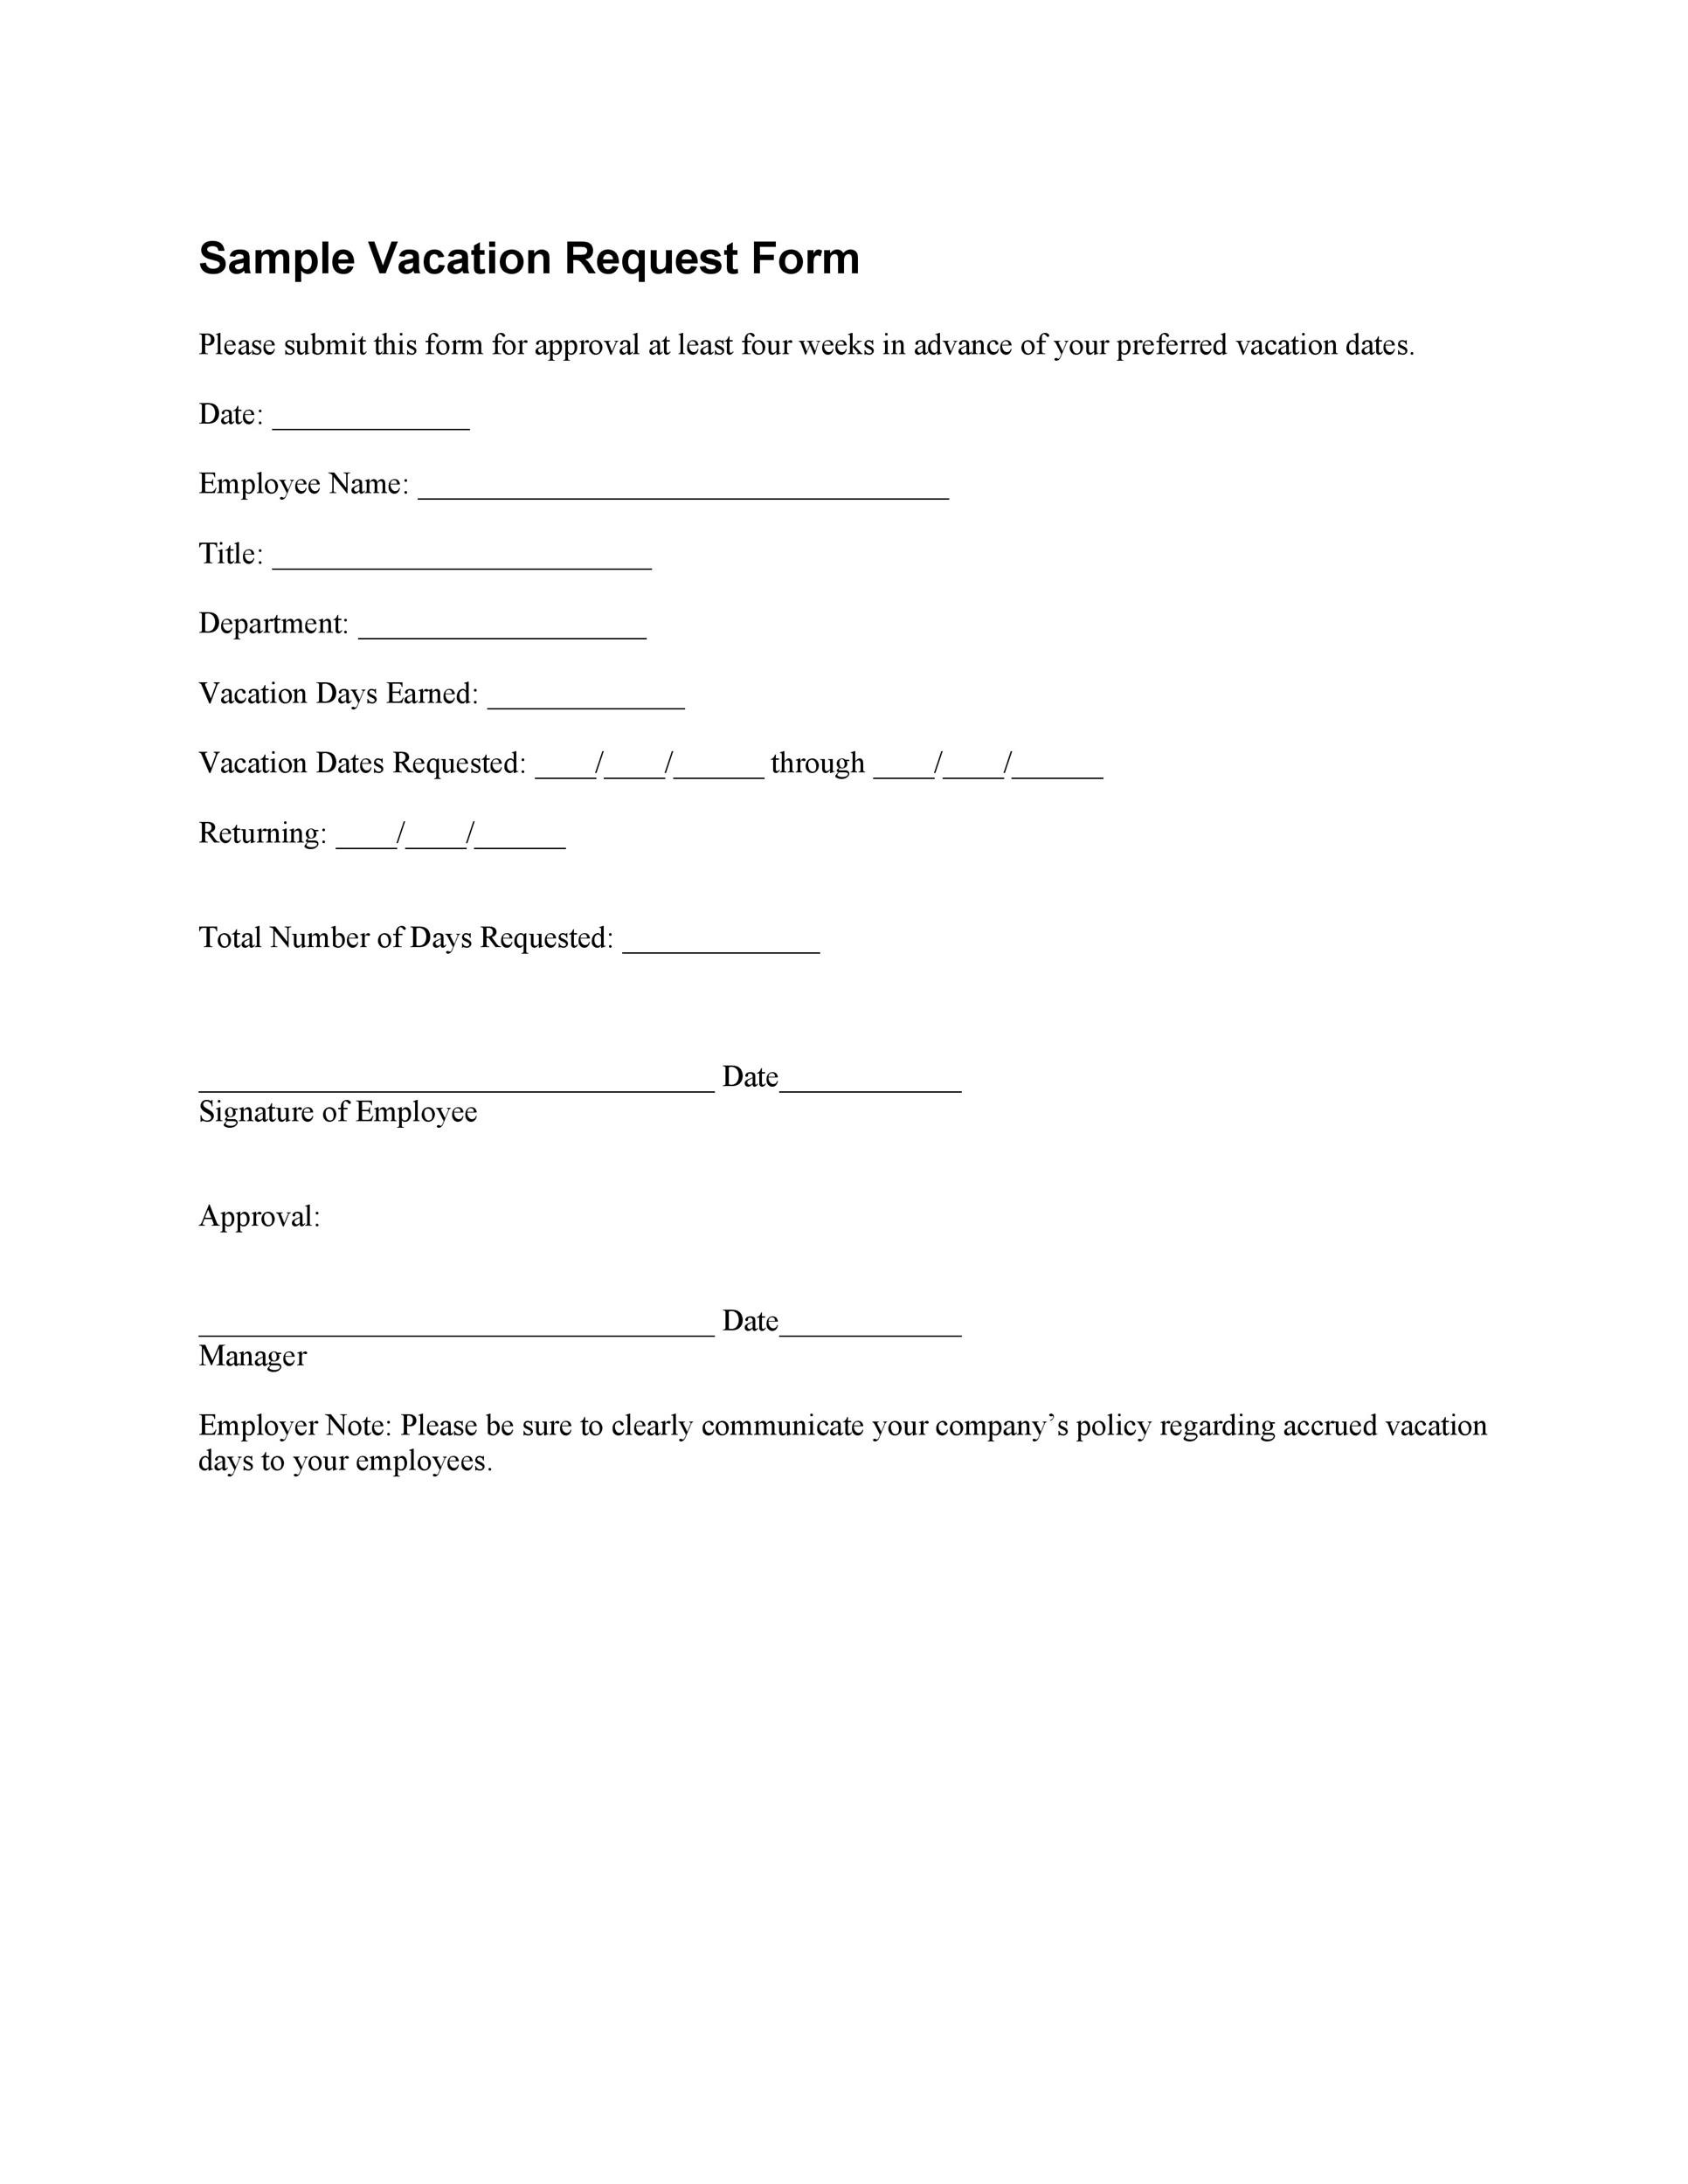 Free vacation request form 06